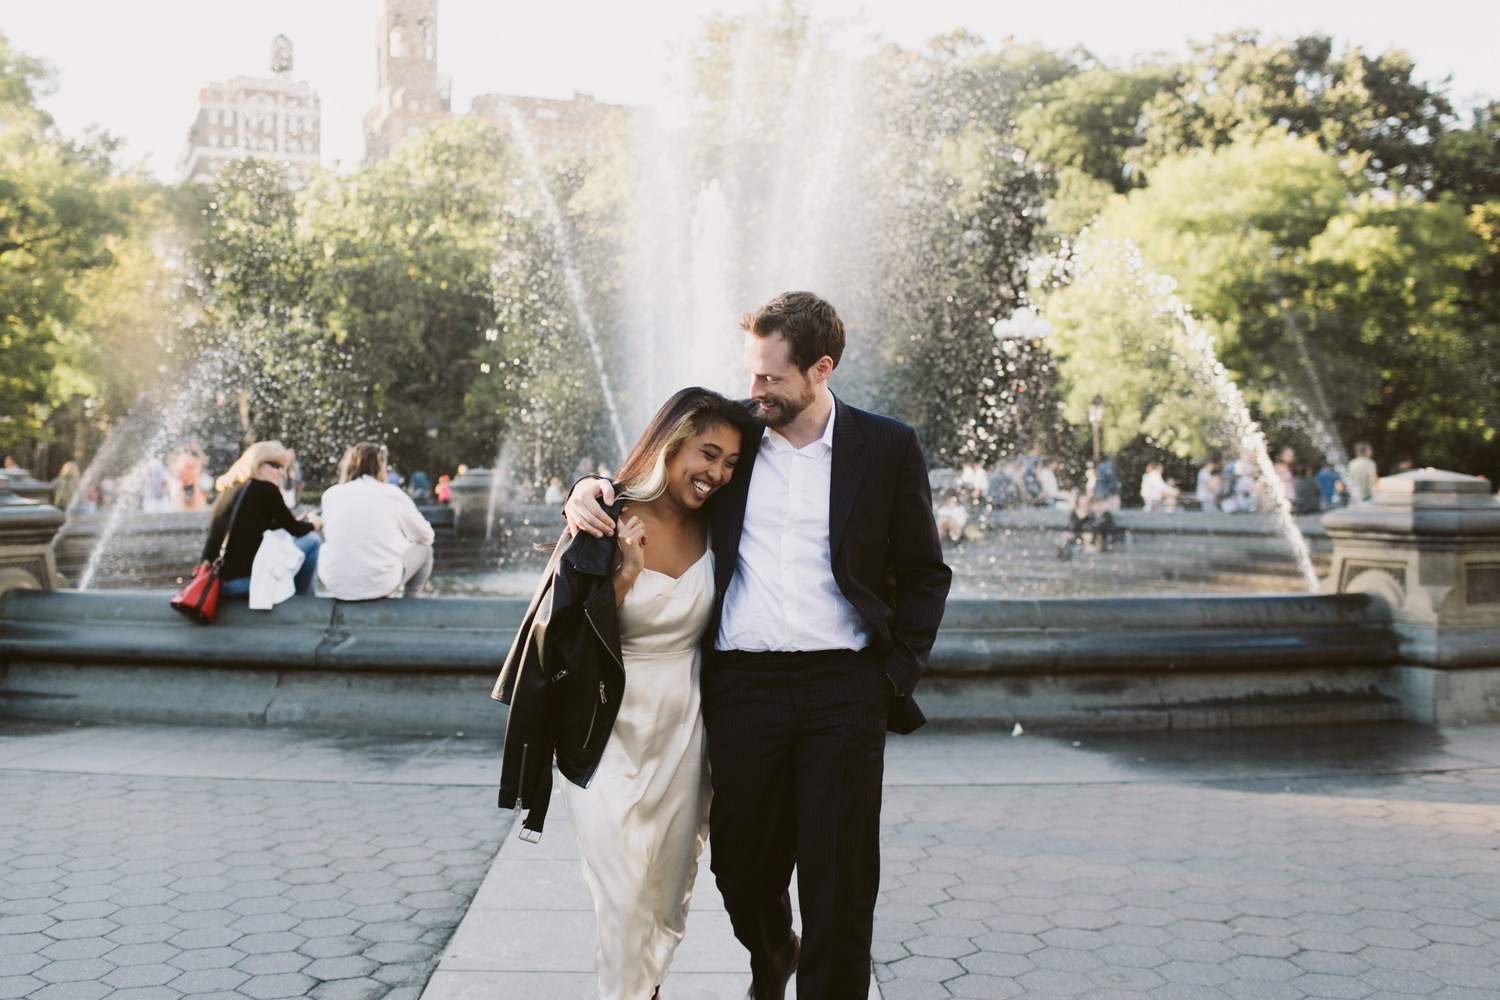 elopement-nyc-cityhall-wedding-47.jpg